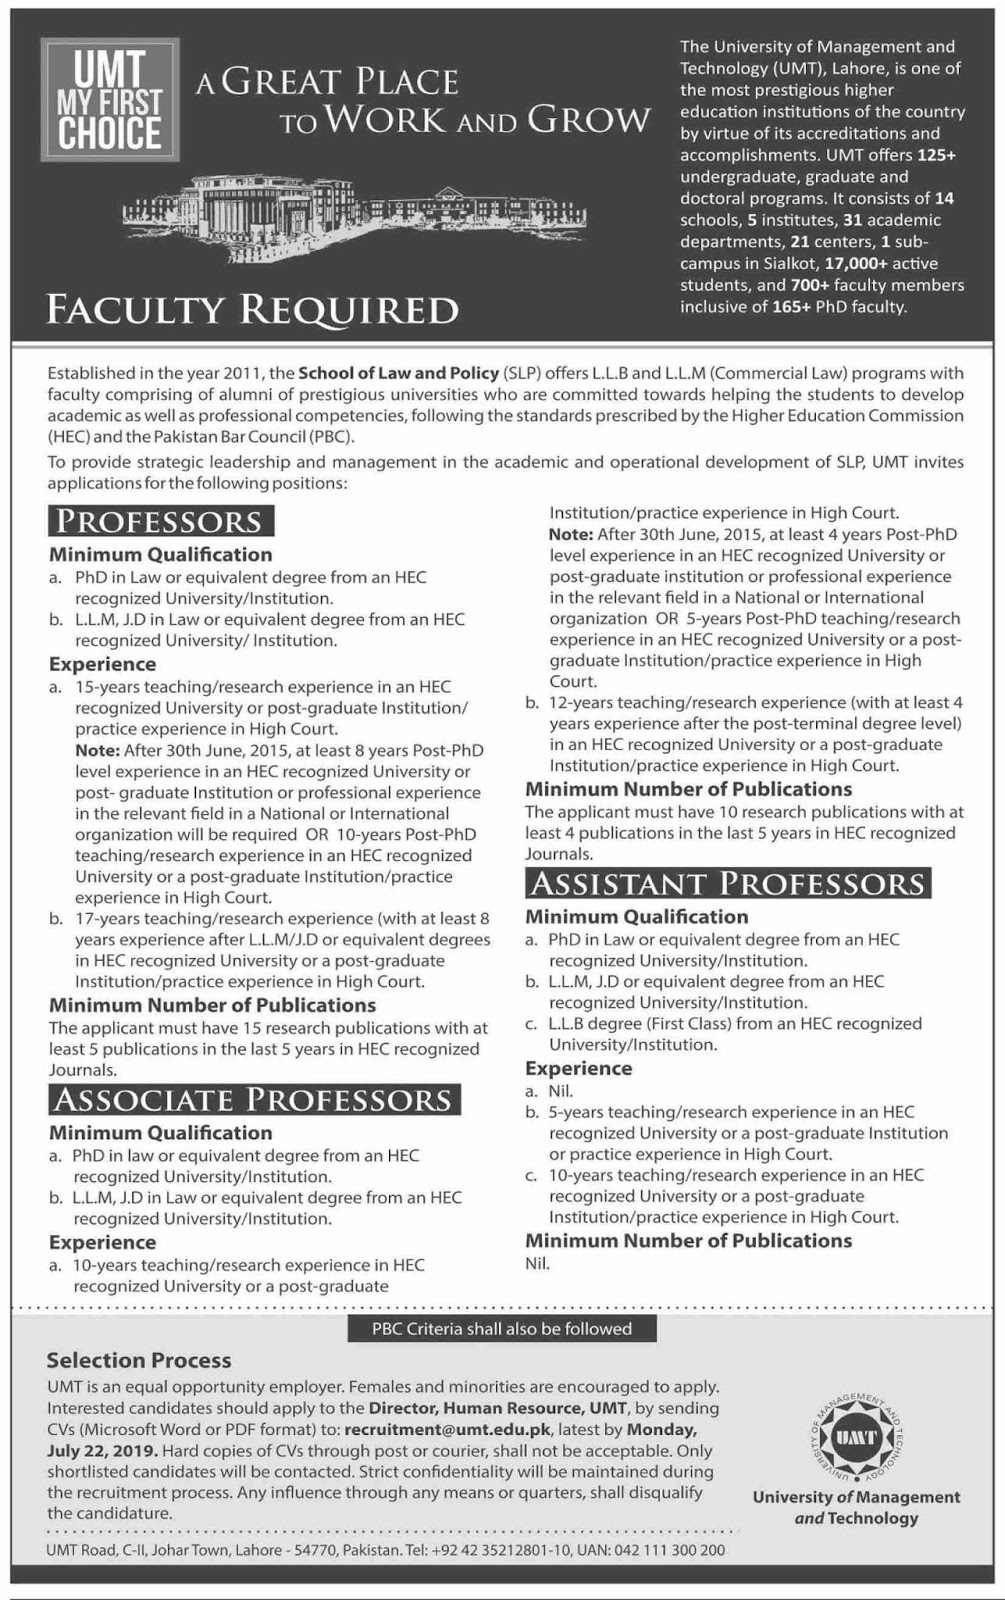 Advertisement for the University of Management and Technology Jobs